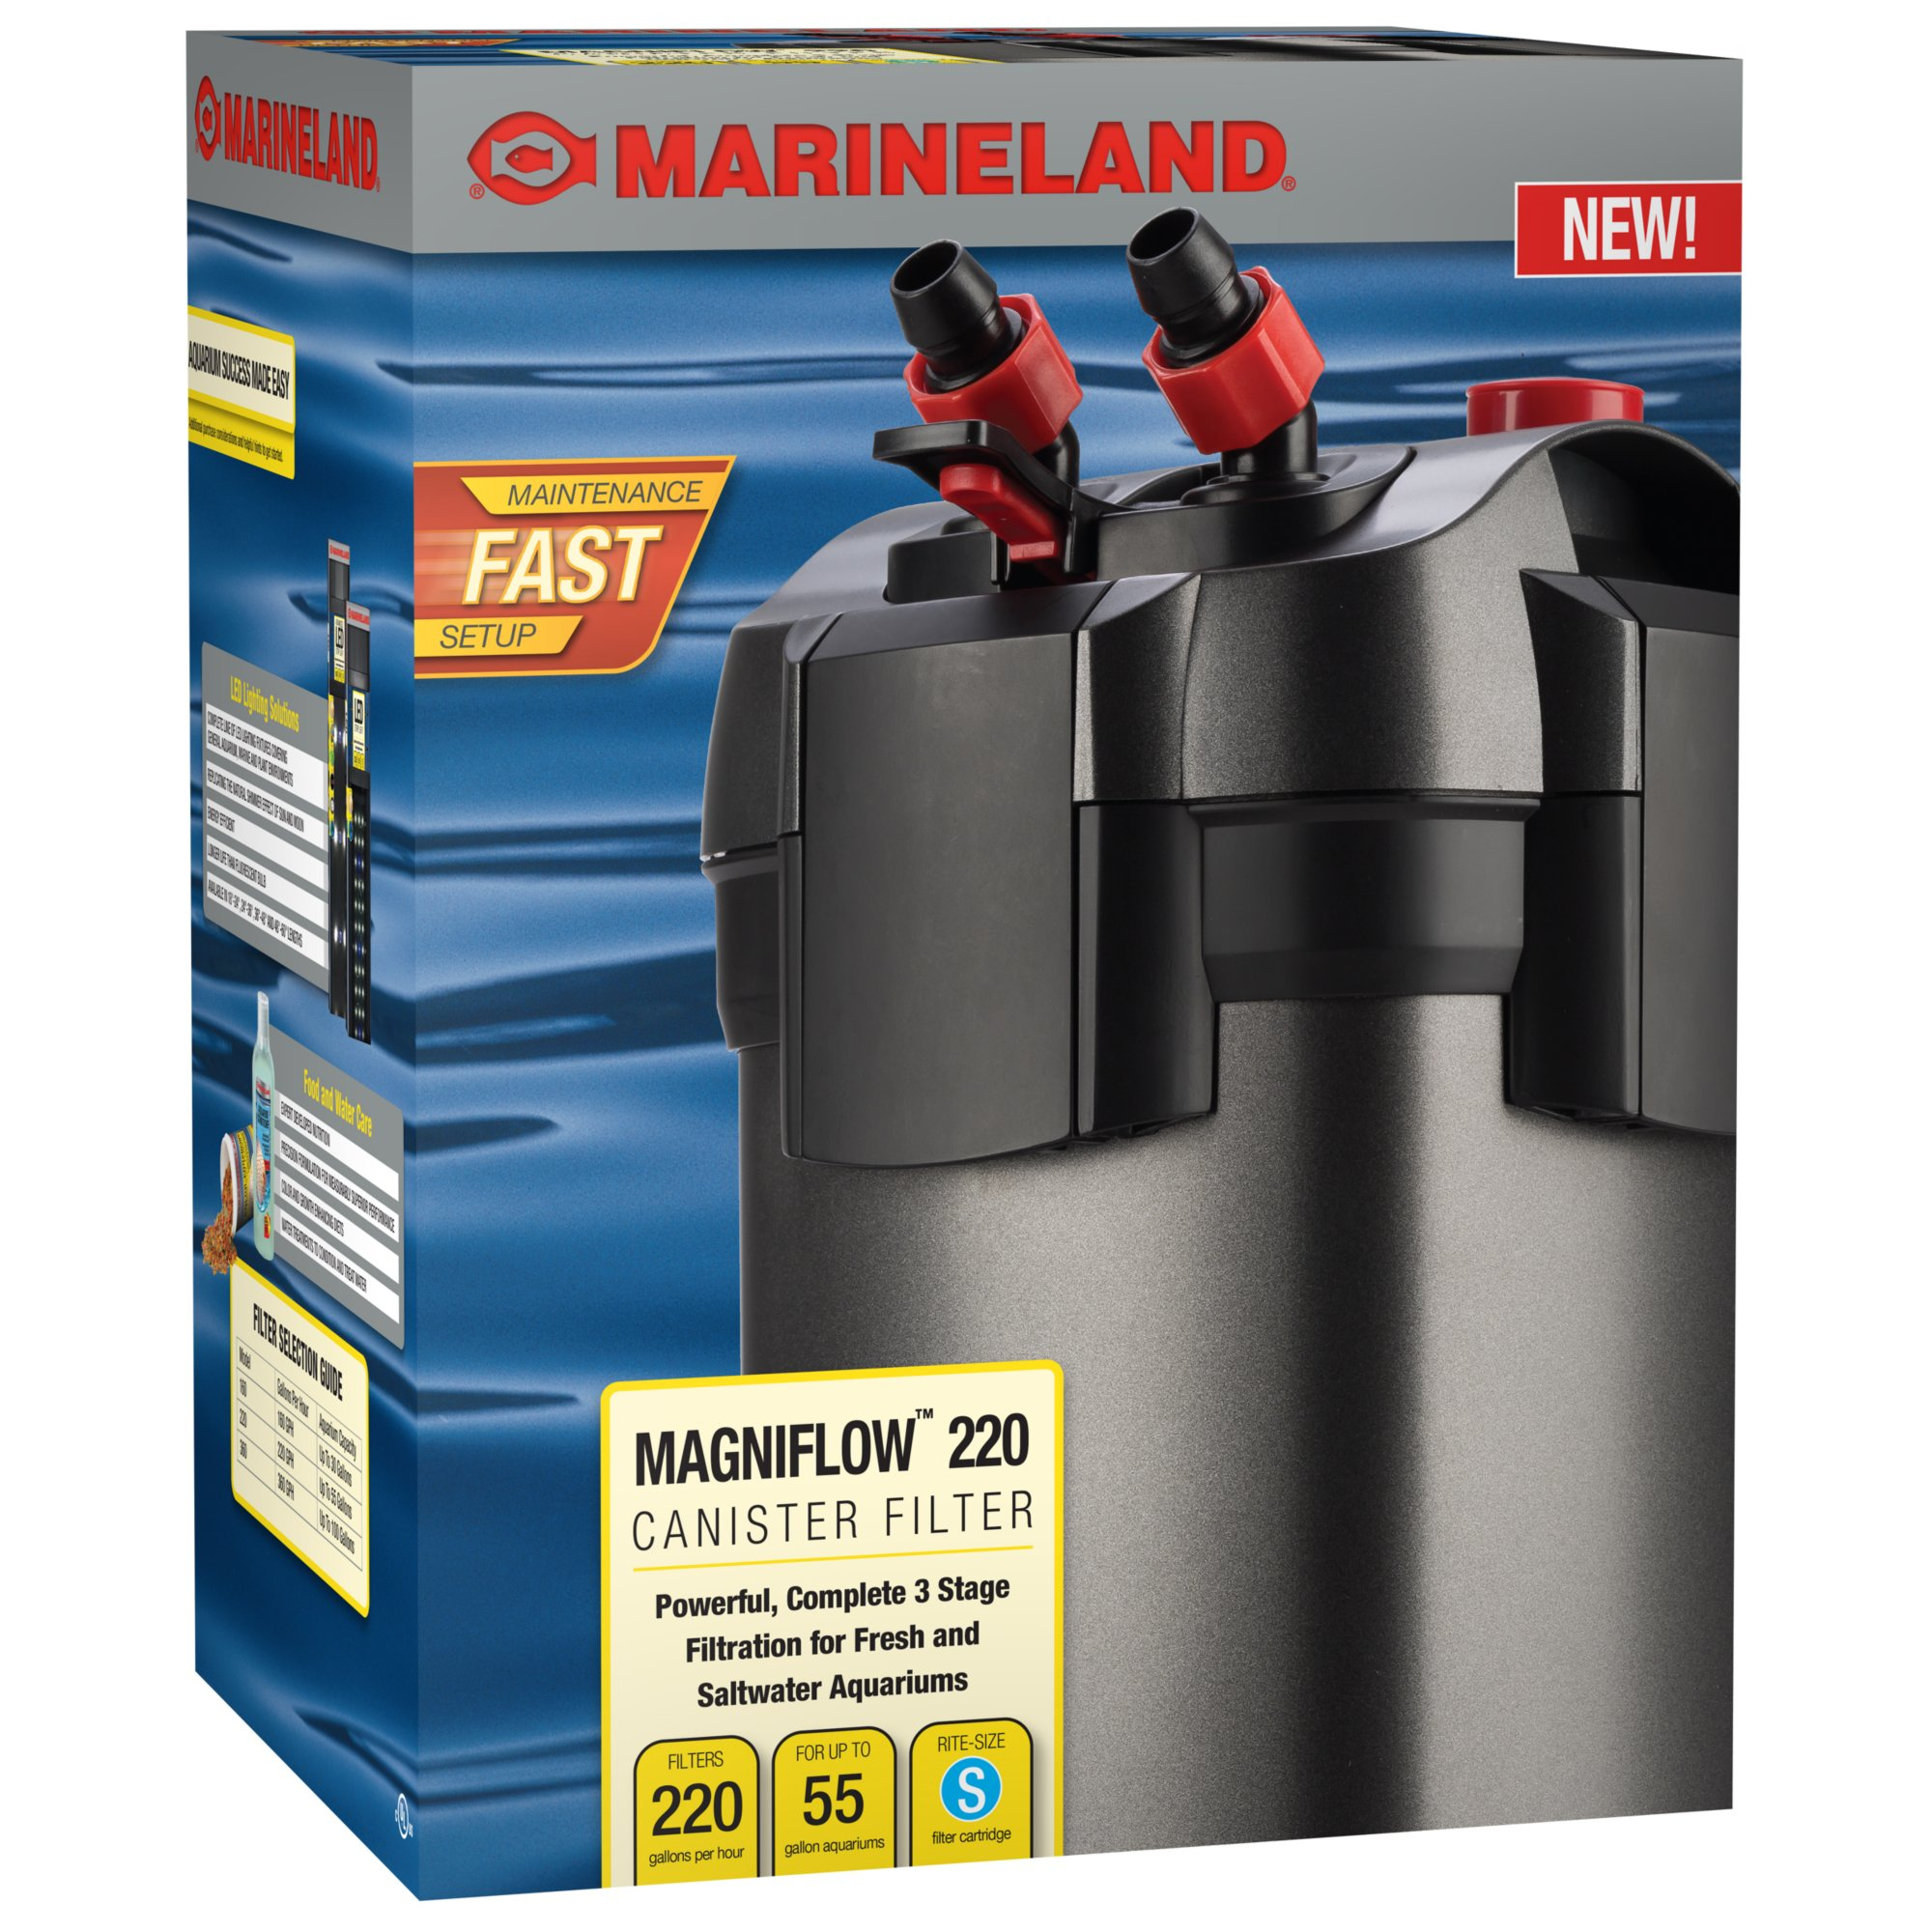 Marineland magniflow 220 canister filter petco for 55 gallon fish tank petco